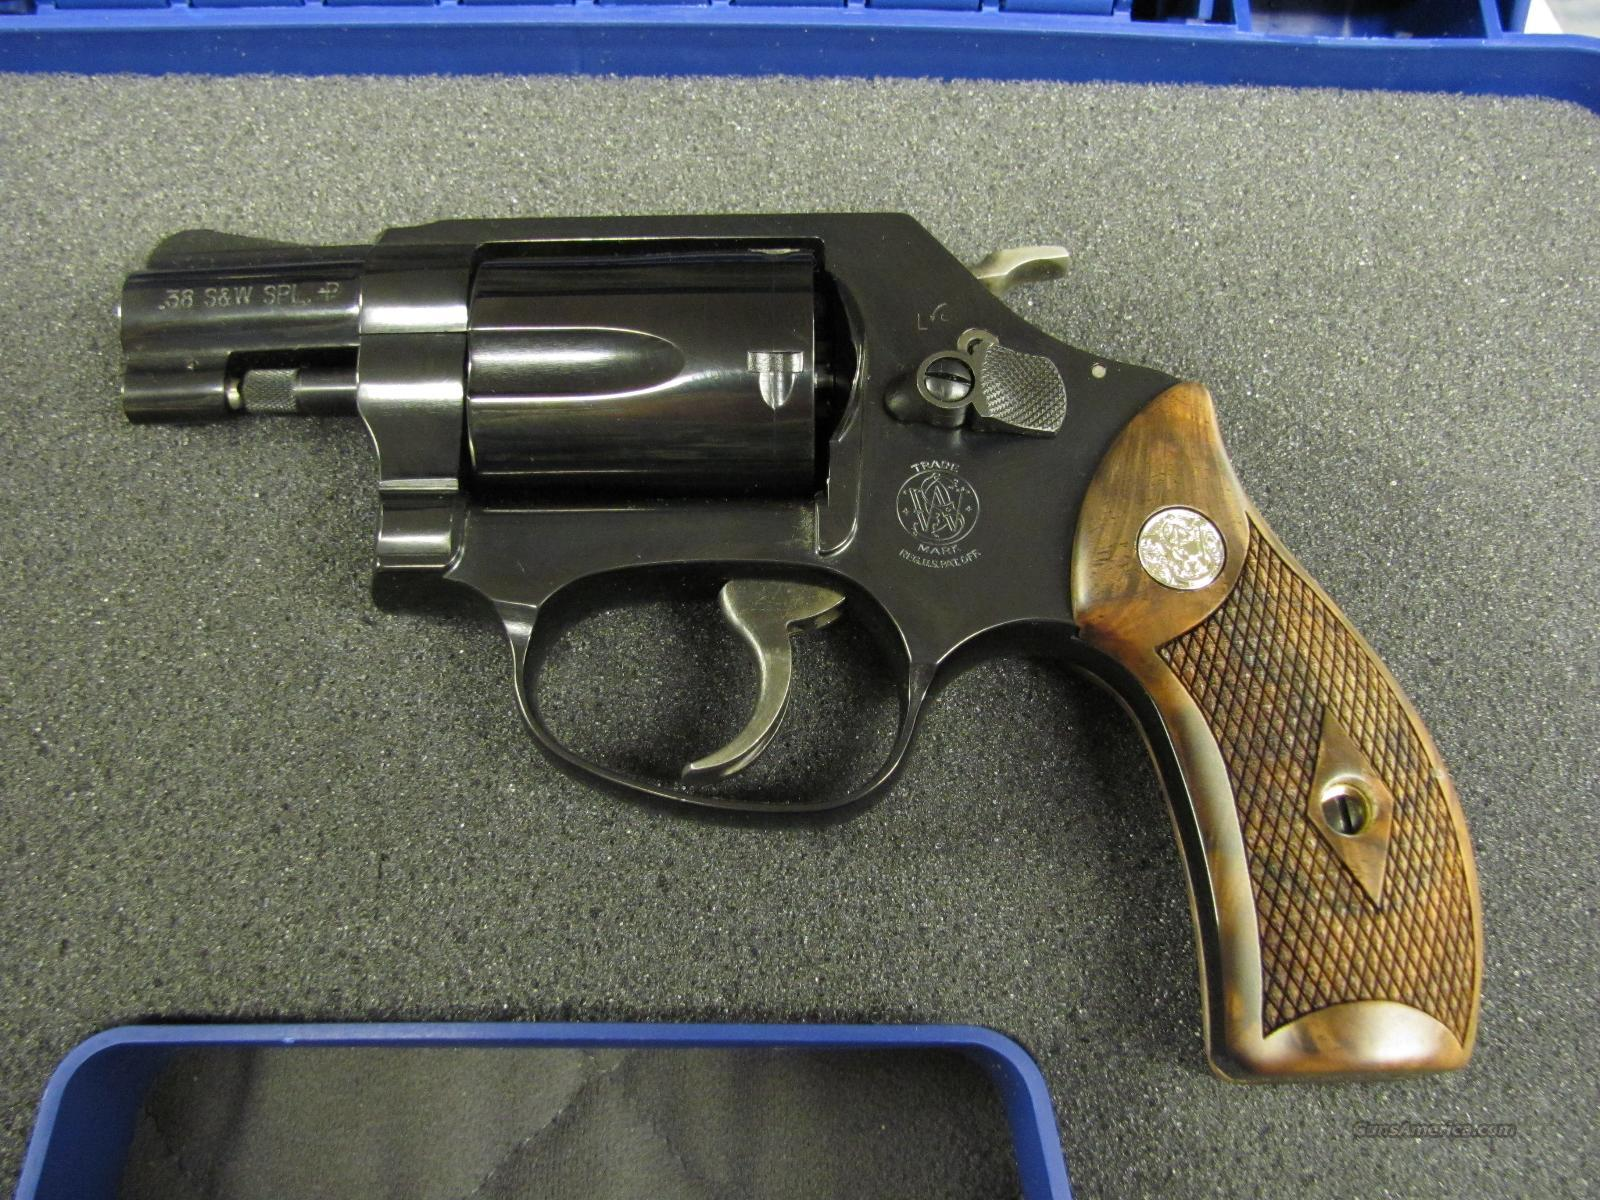 Smith & Wesson Model 36 38 Special +P  **NEW**  Guns > Pistols > Smith & Wesson Revolvers > Pocket Pistols